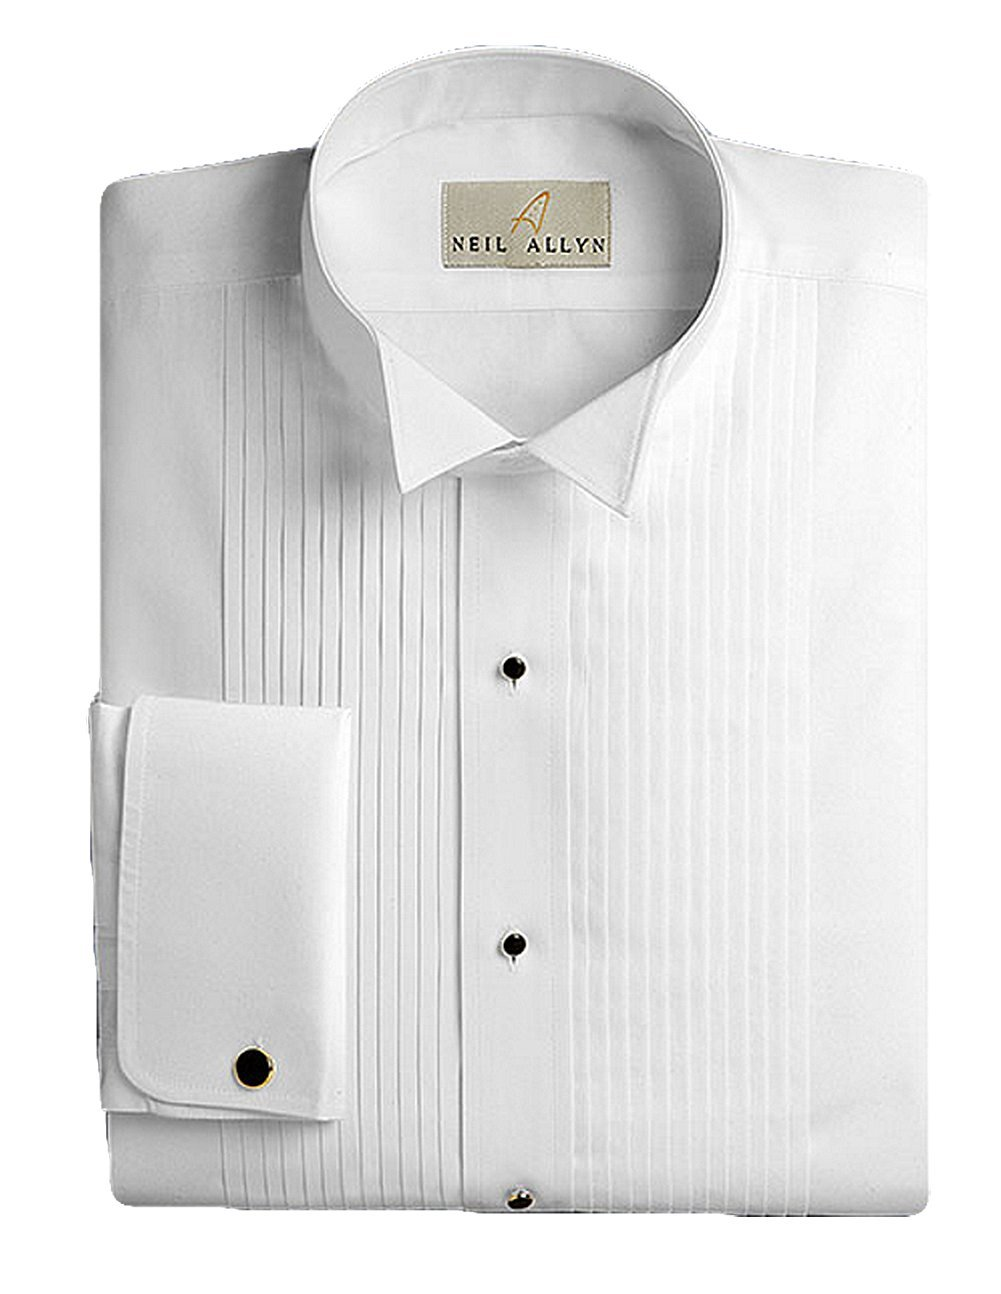 Neil Allyn Men's 100% Cotton Tuxedo Shirt, Slim Fit, 18 (36/37) by Neil Allyn